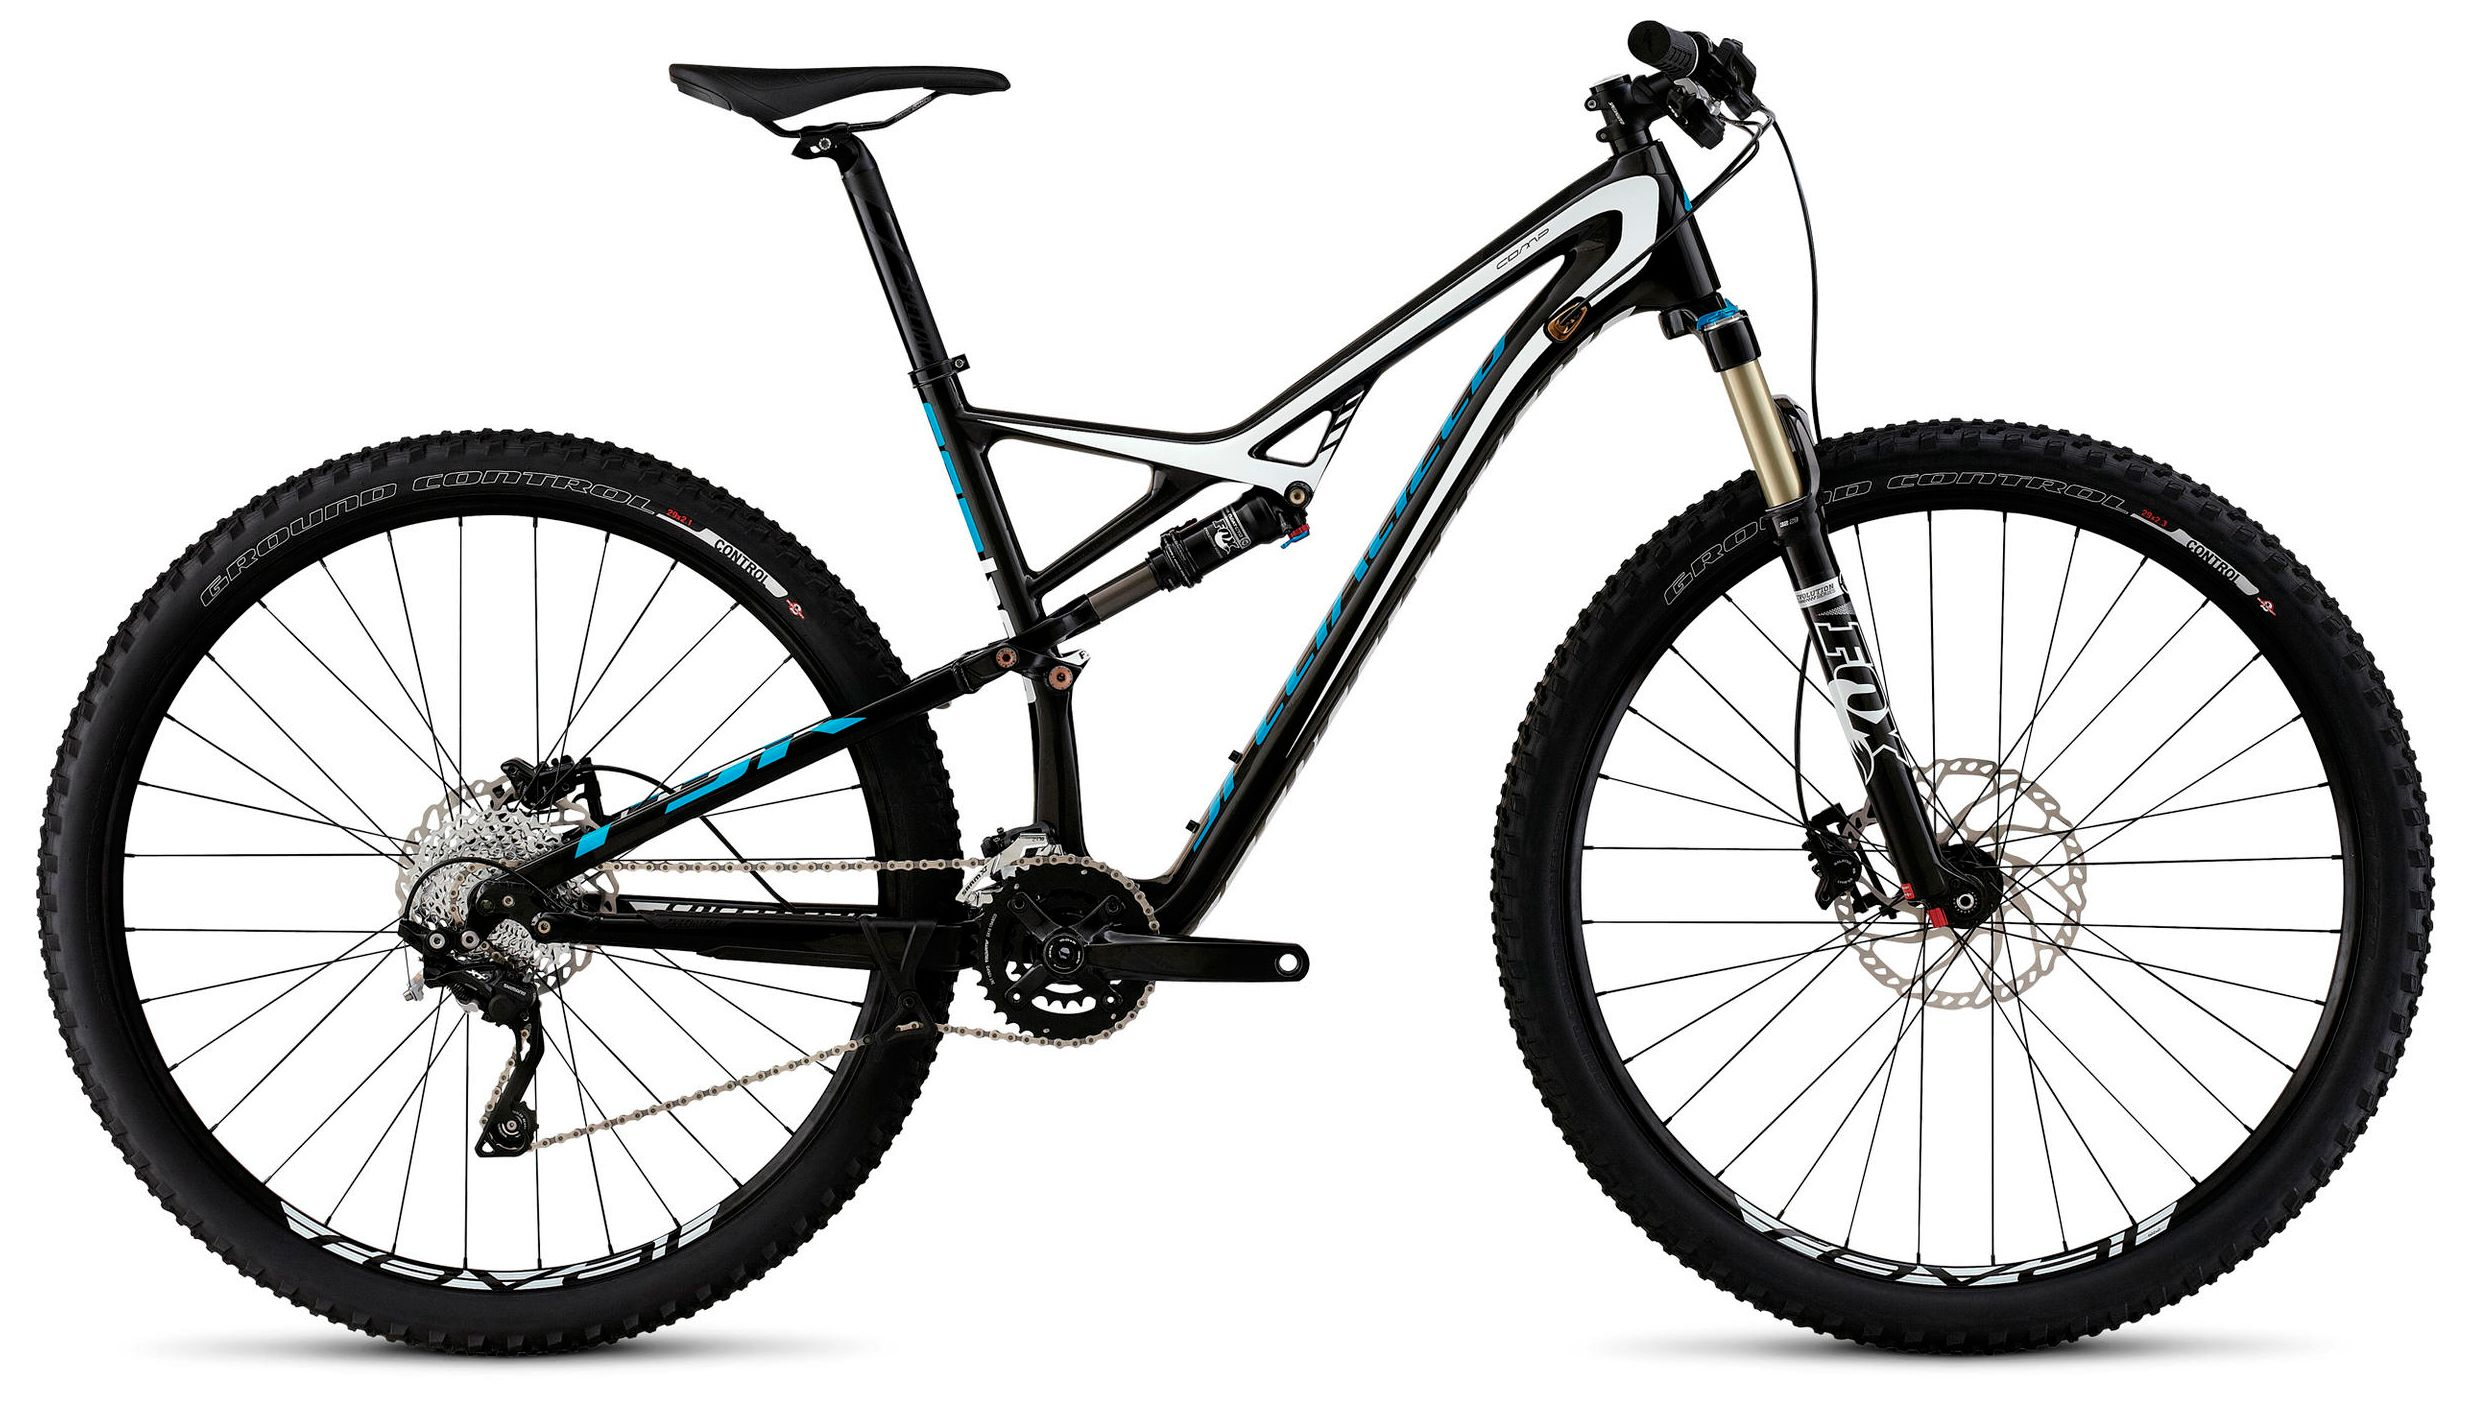 Велосипед Specialized Camber Comp Carbon 29 2016 велосипед specialized sirrus elite 2015